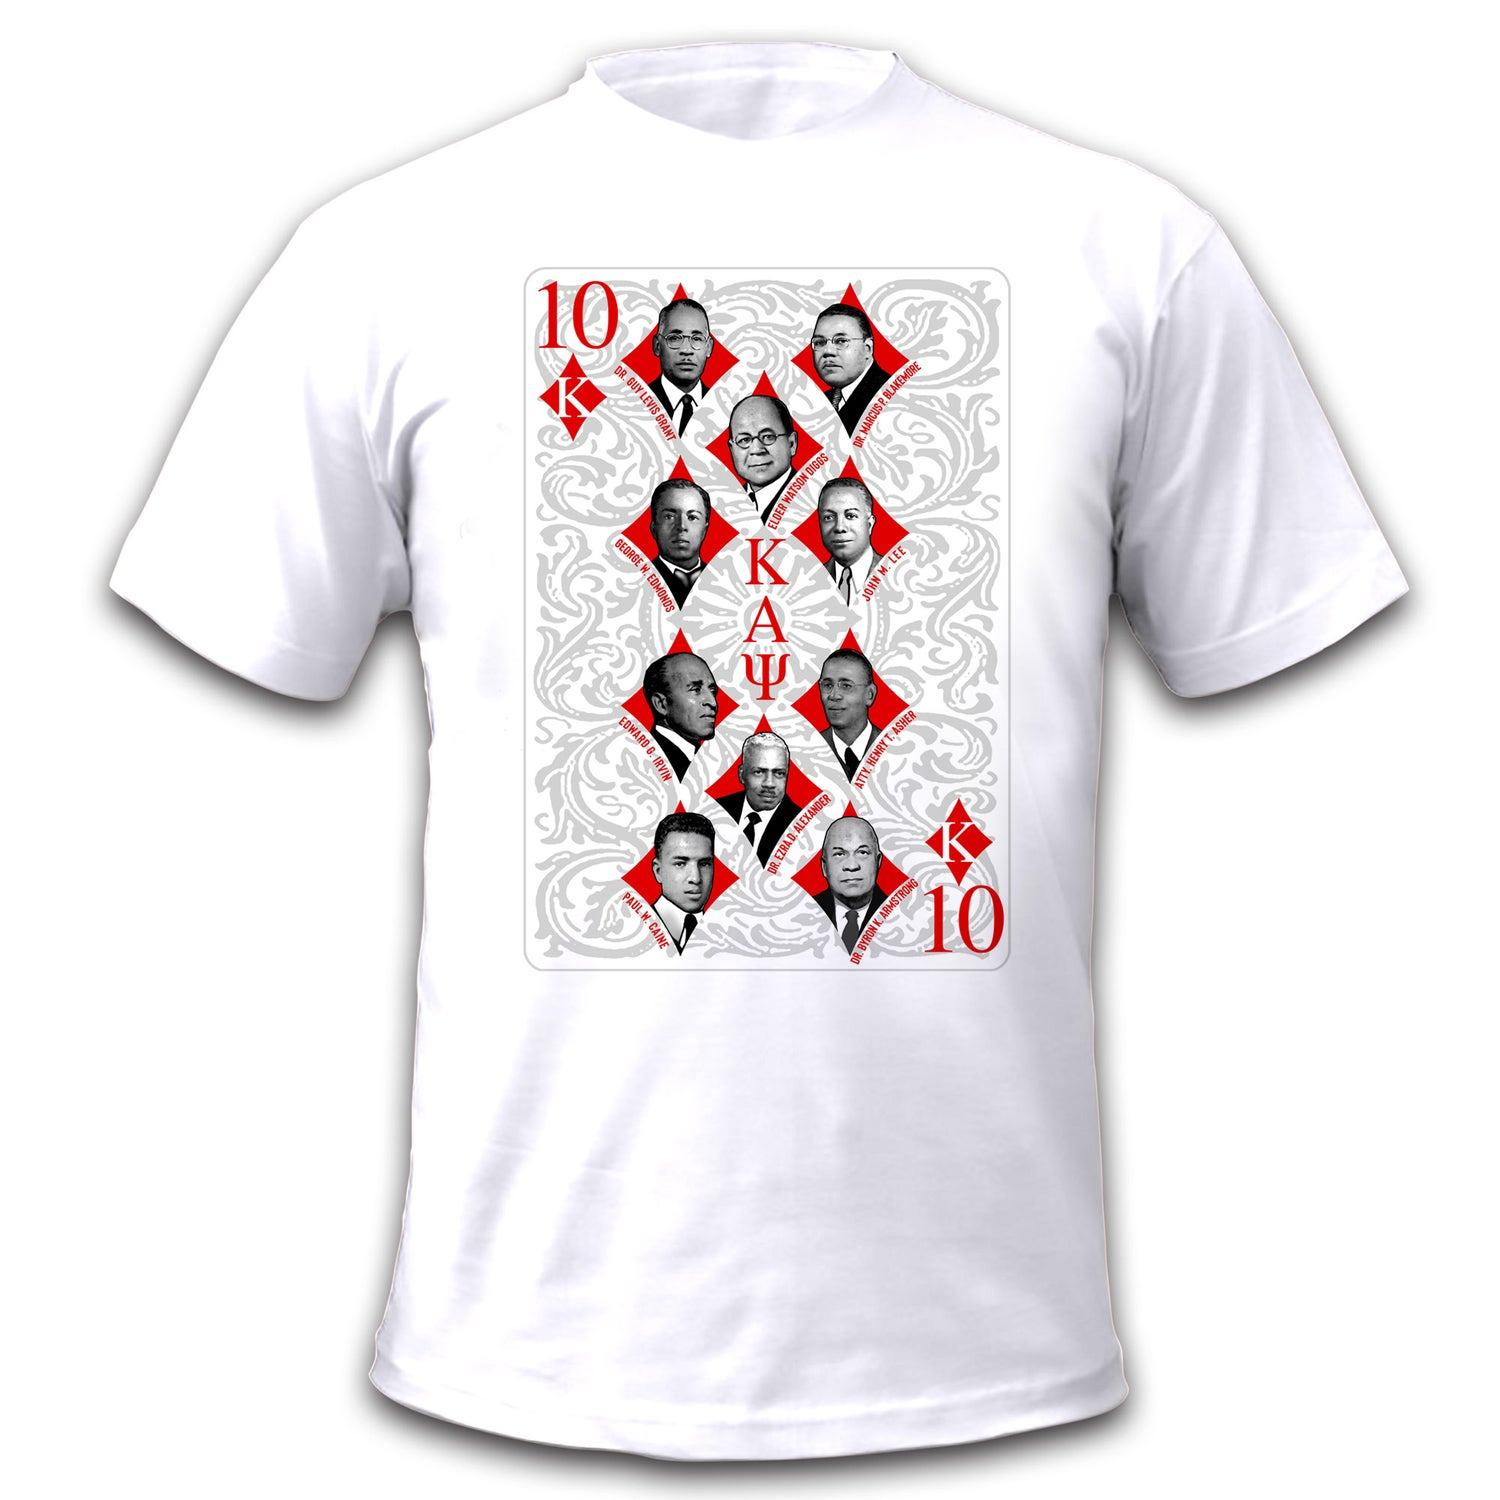 Image of 10 Diamonds Founders Graphic Dry Fit T-Shirt